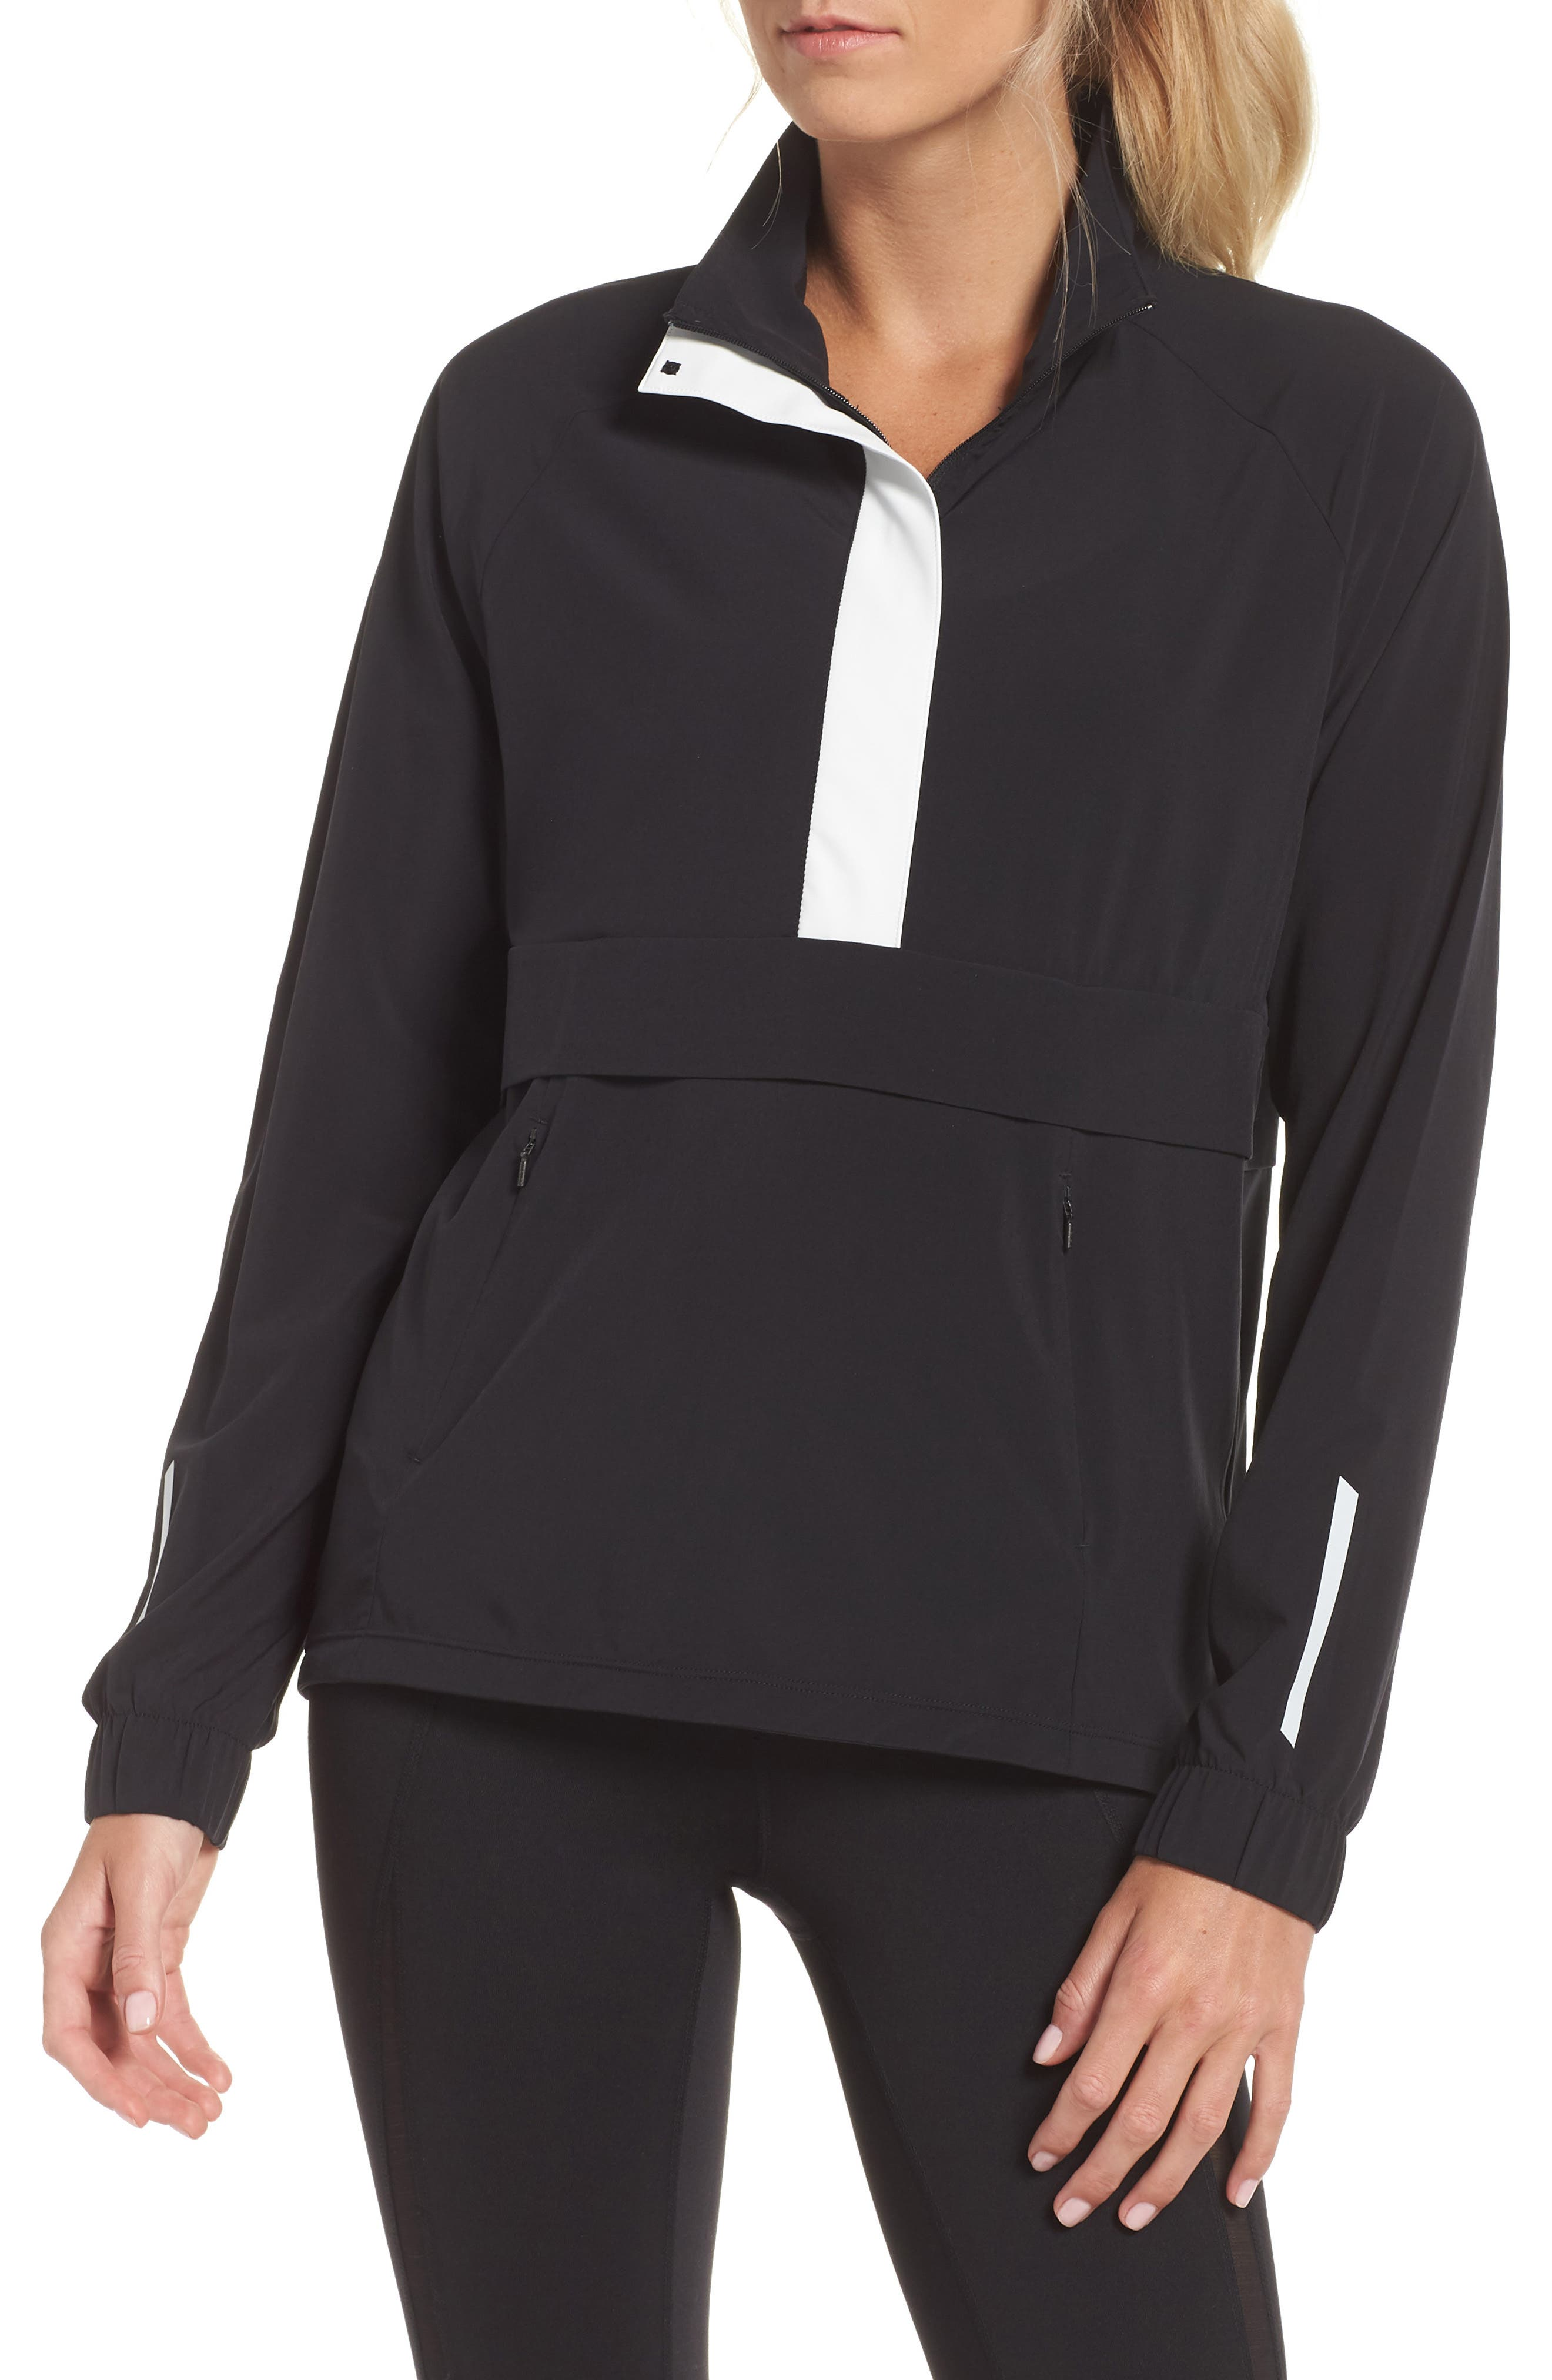 Freestyle Reflective Run Pullover,                             Main thumbnail 1, color,                             001